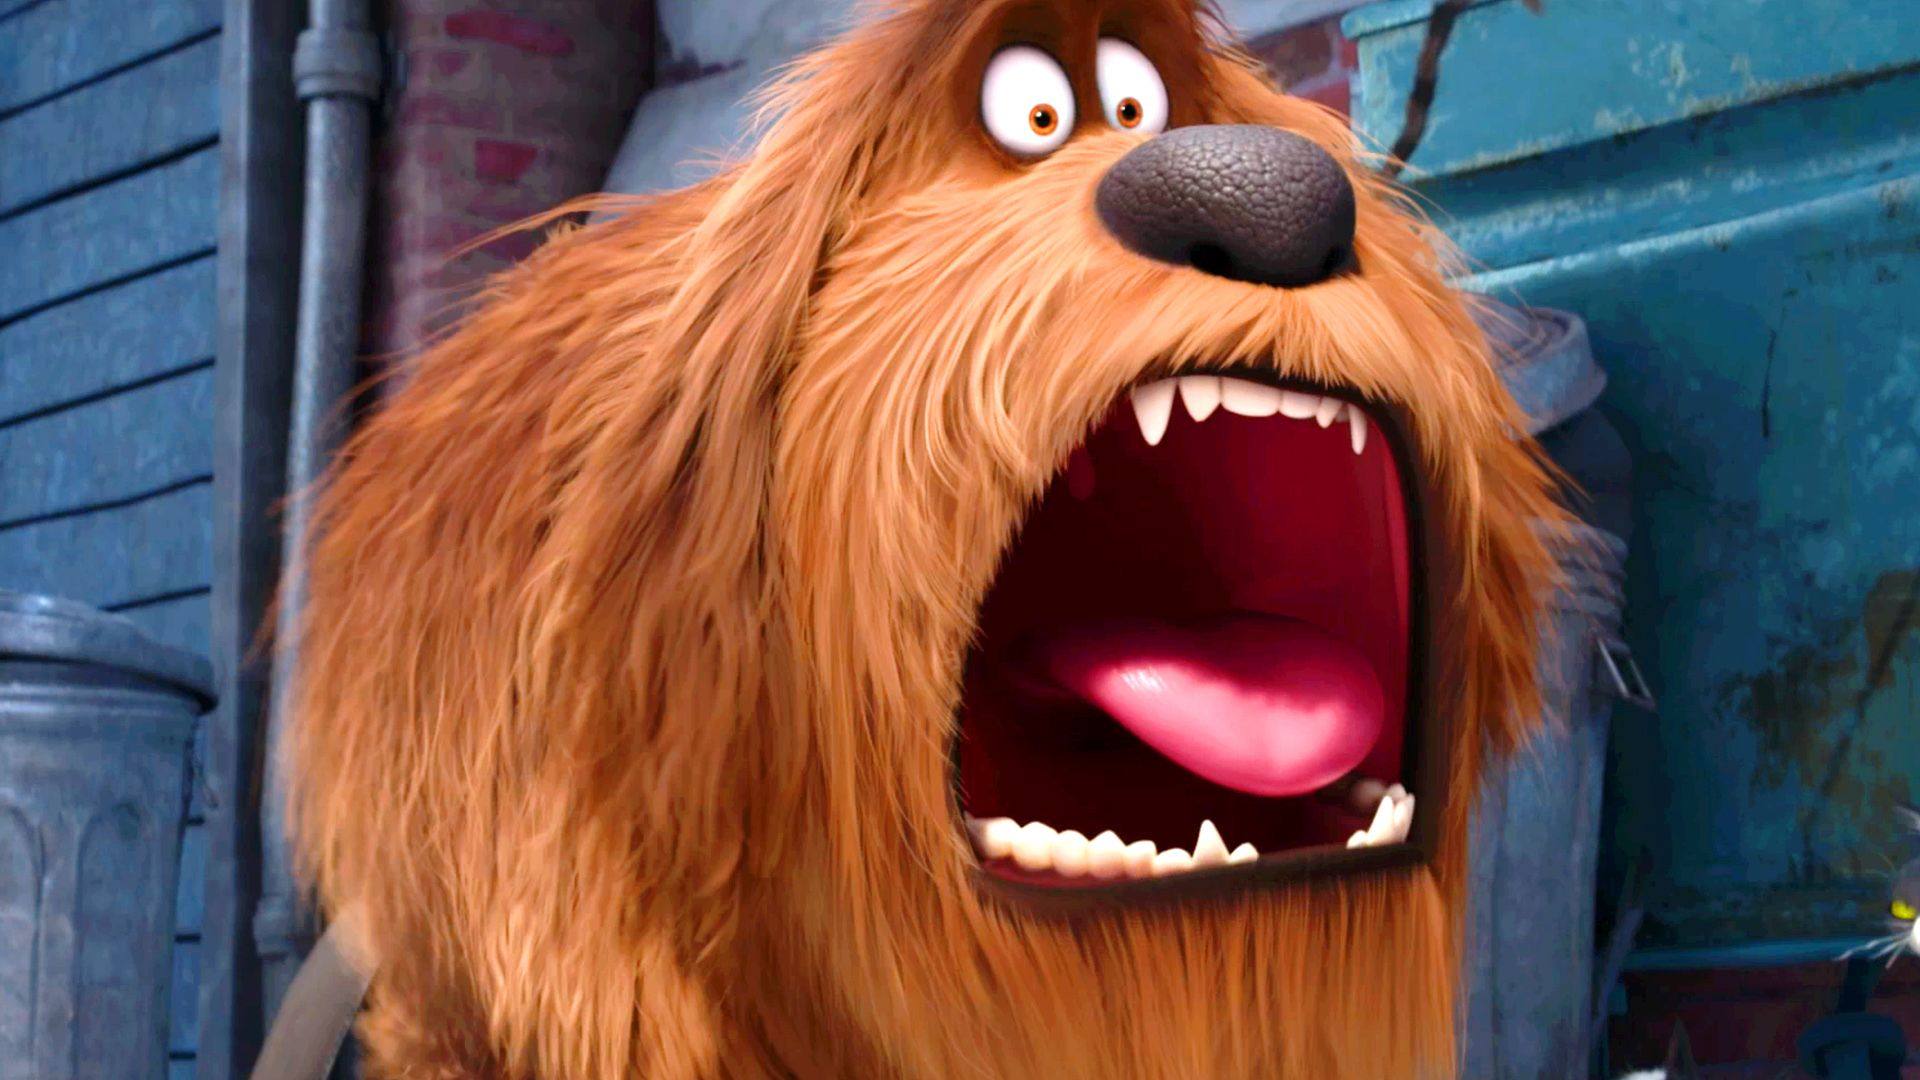 Beware Secret Lives Of Pets Is Not For Kids The Plot Is Intriguing And It Peaked My Interest Too So Wit With Images Secret Life Of Pets Comedy Hd Best